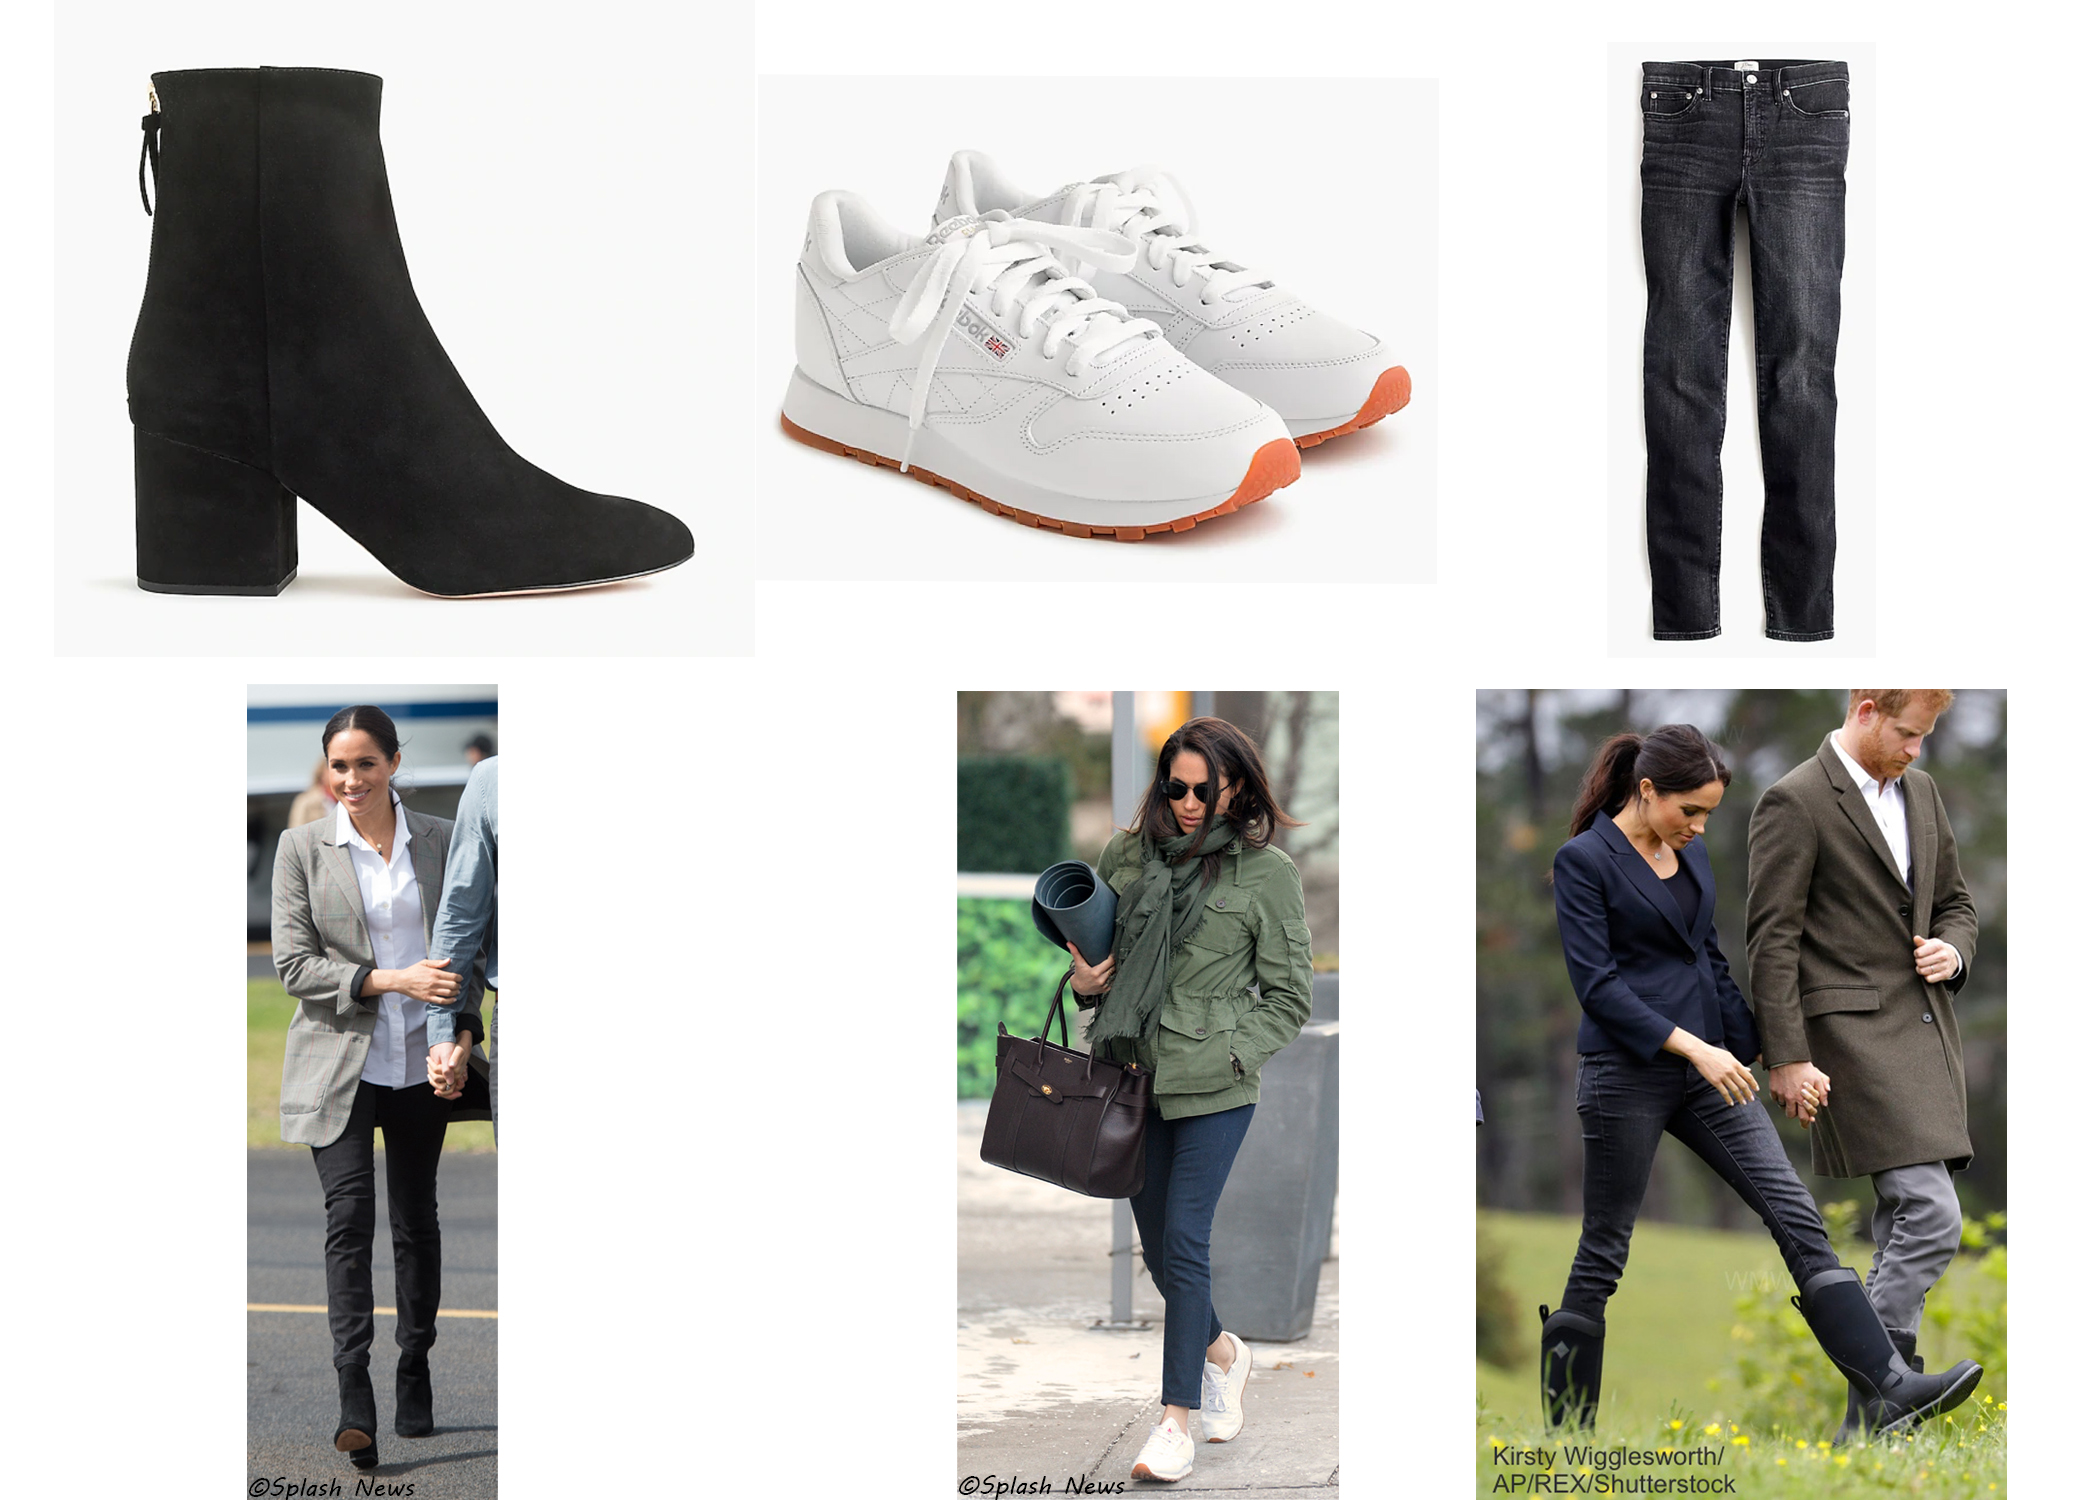 1c856e8fd159 Meghan has been seen wearing a J.Crew green utility jacket and sandals on a  number of occasions. Here are two #MatchMegStyle options from J.Crew  included in ...